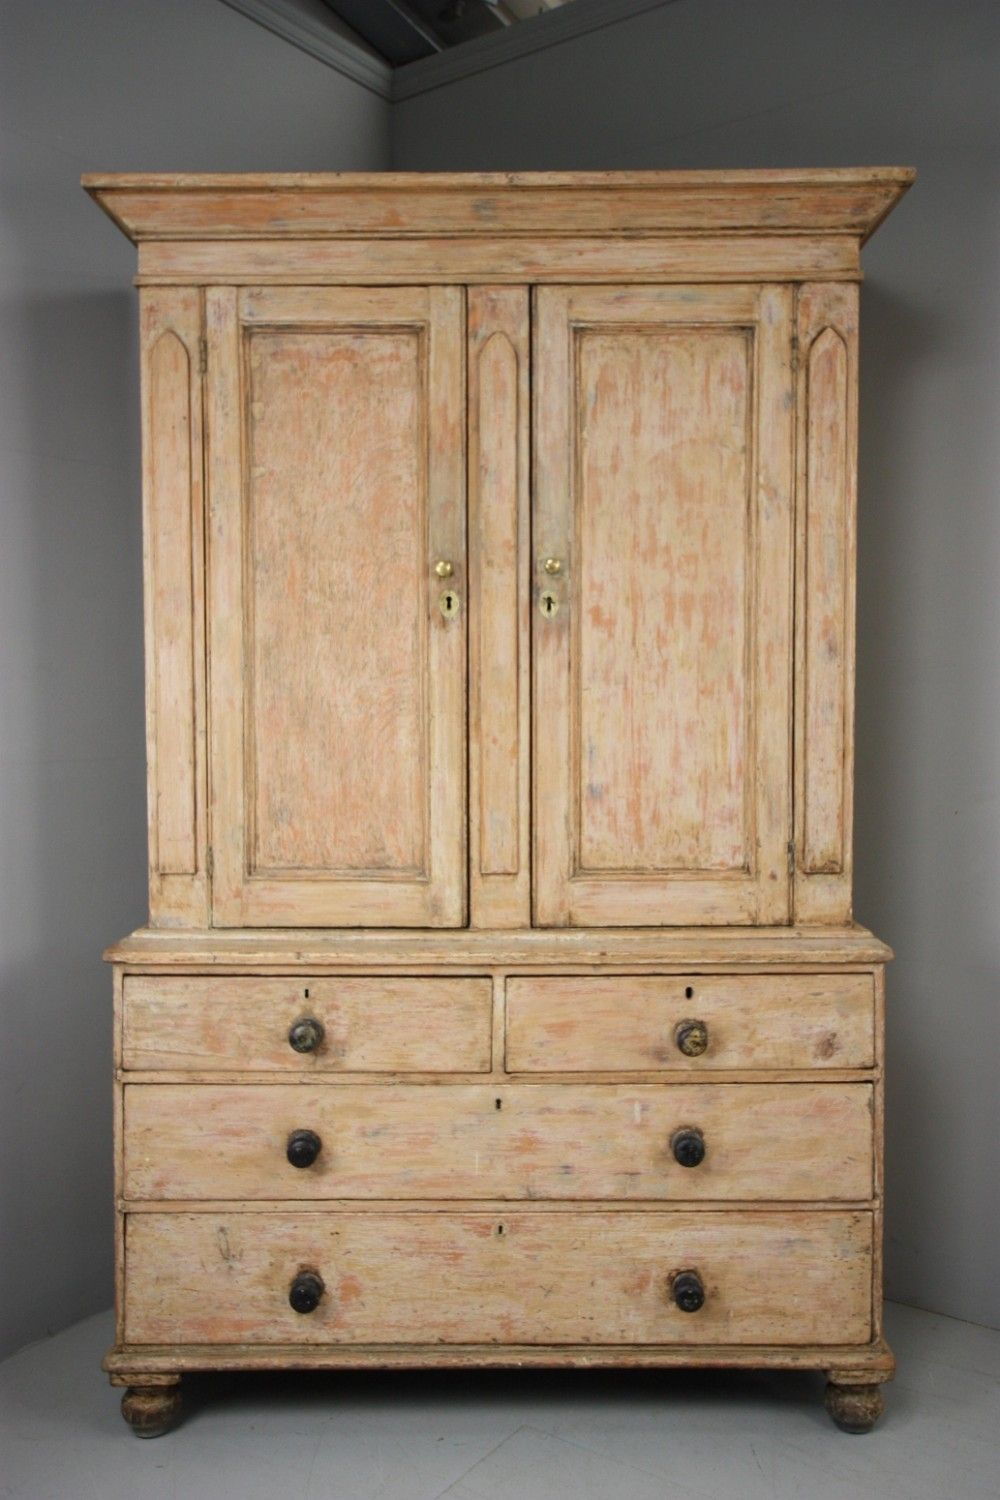 Casagiardino English Antique Painted Pine Housemaids Cupboard Raw Wood Furniture Design